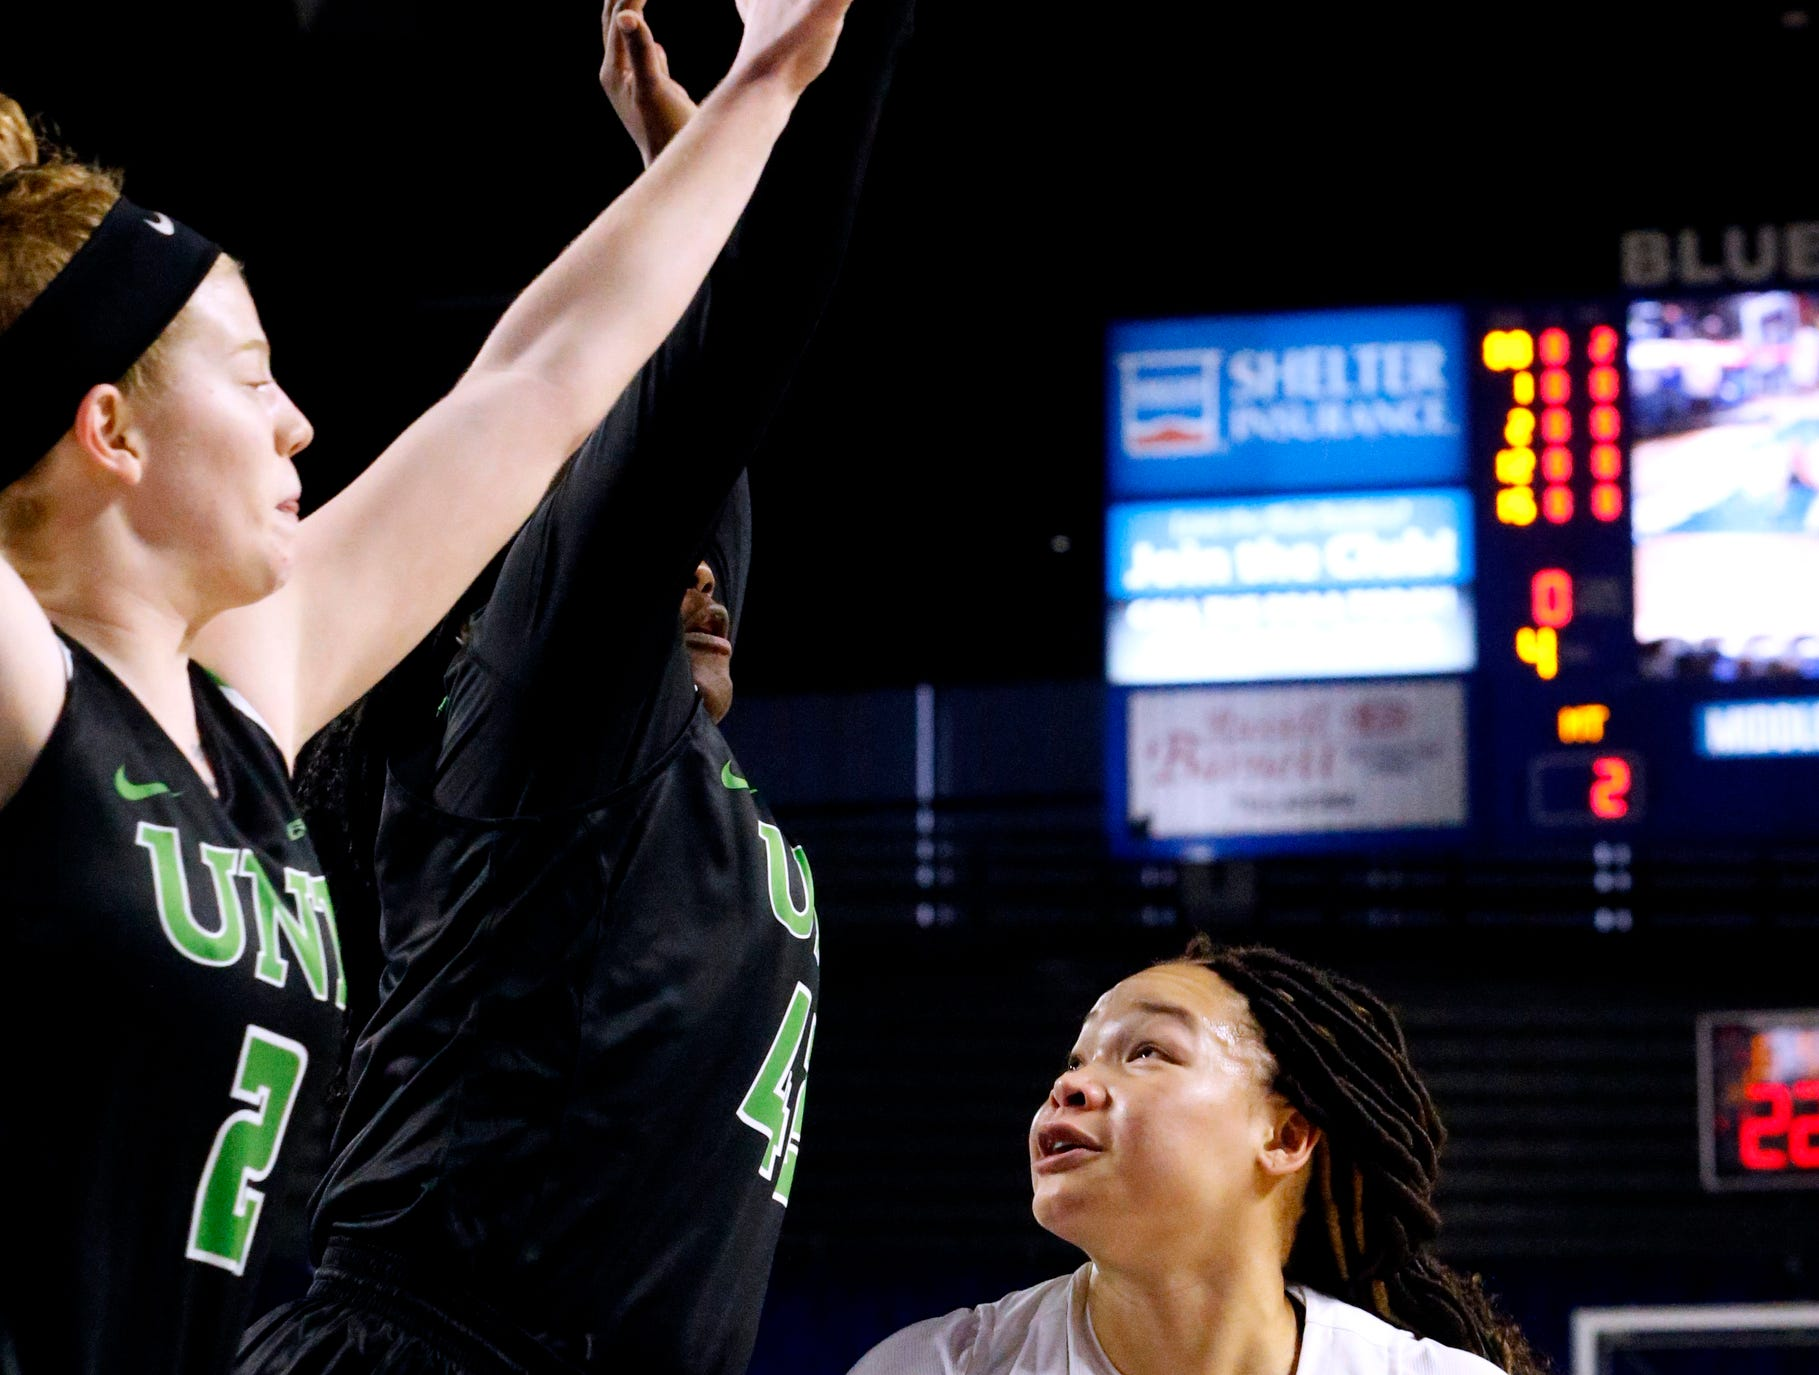 MTSU's forward Alex Johnson (00) goes looks to go up for a shot as North Texas' forward/center Anisha George (42) and North Texas' guard Grace Goodhart (2) guard her on Saturday Jan. 26, 2019.